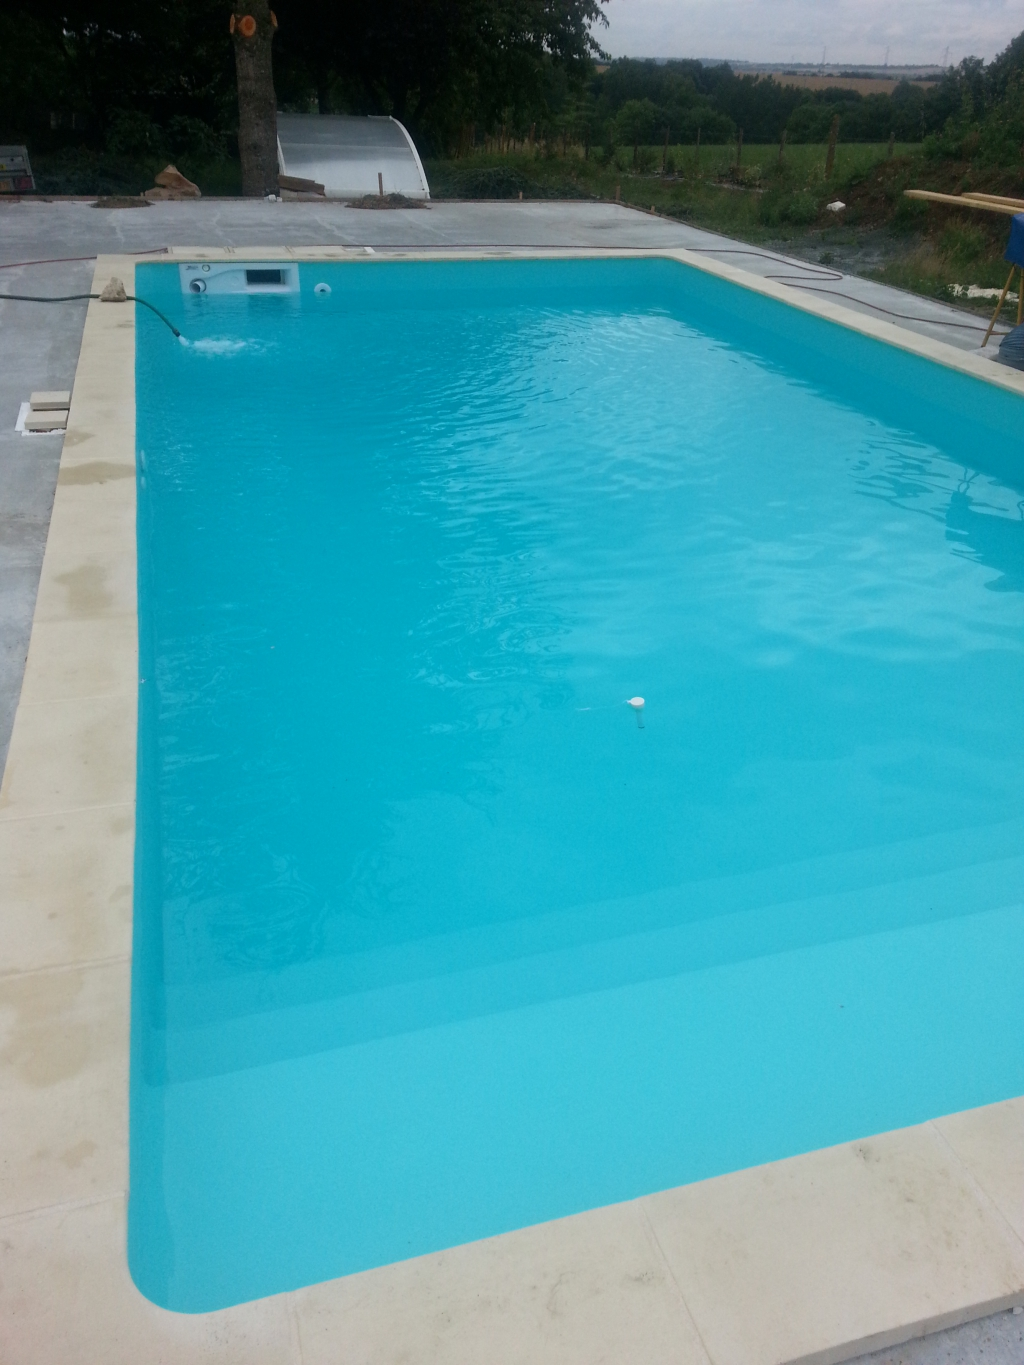 Le remplissage temps attendu 36 h auto construction for Construction piscine magiline